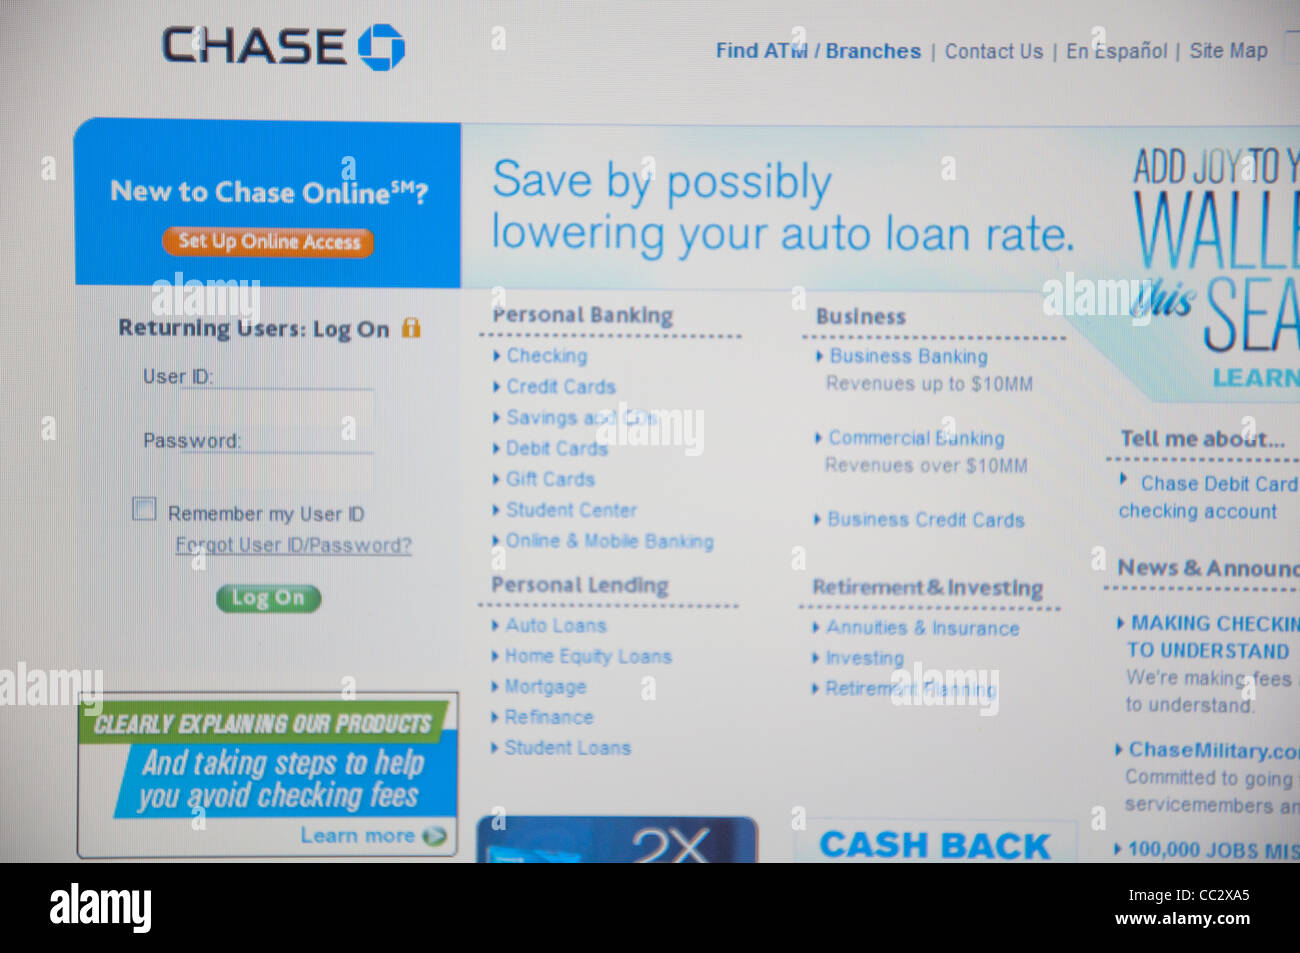 Chase website online screenshot screen shot - Stock Image